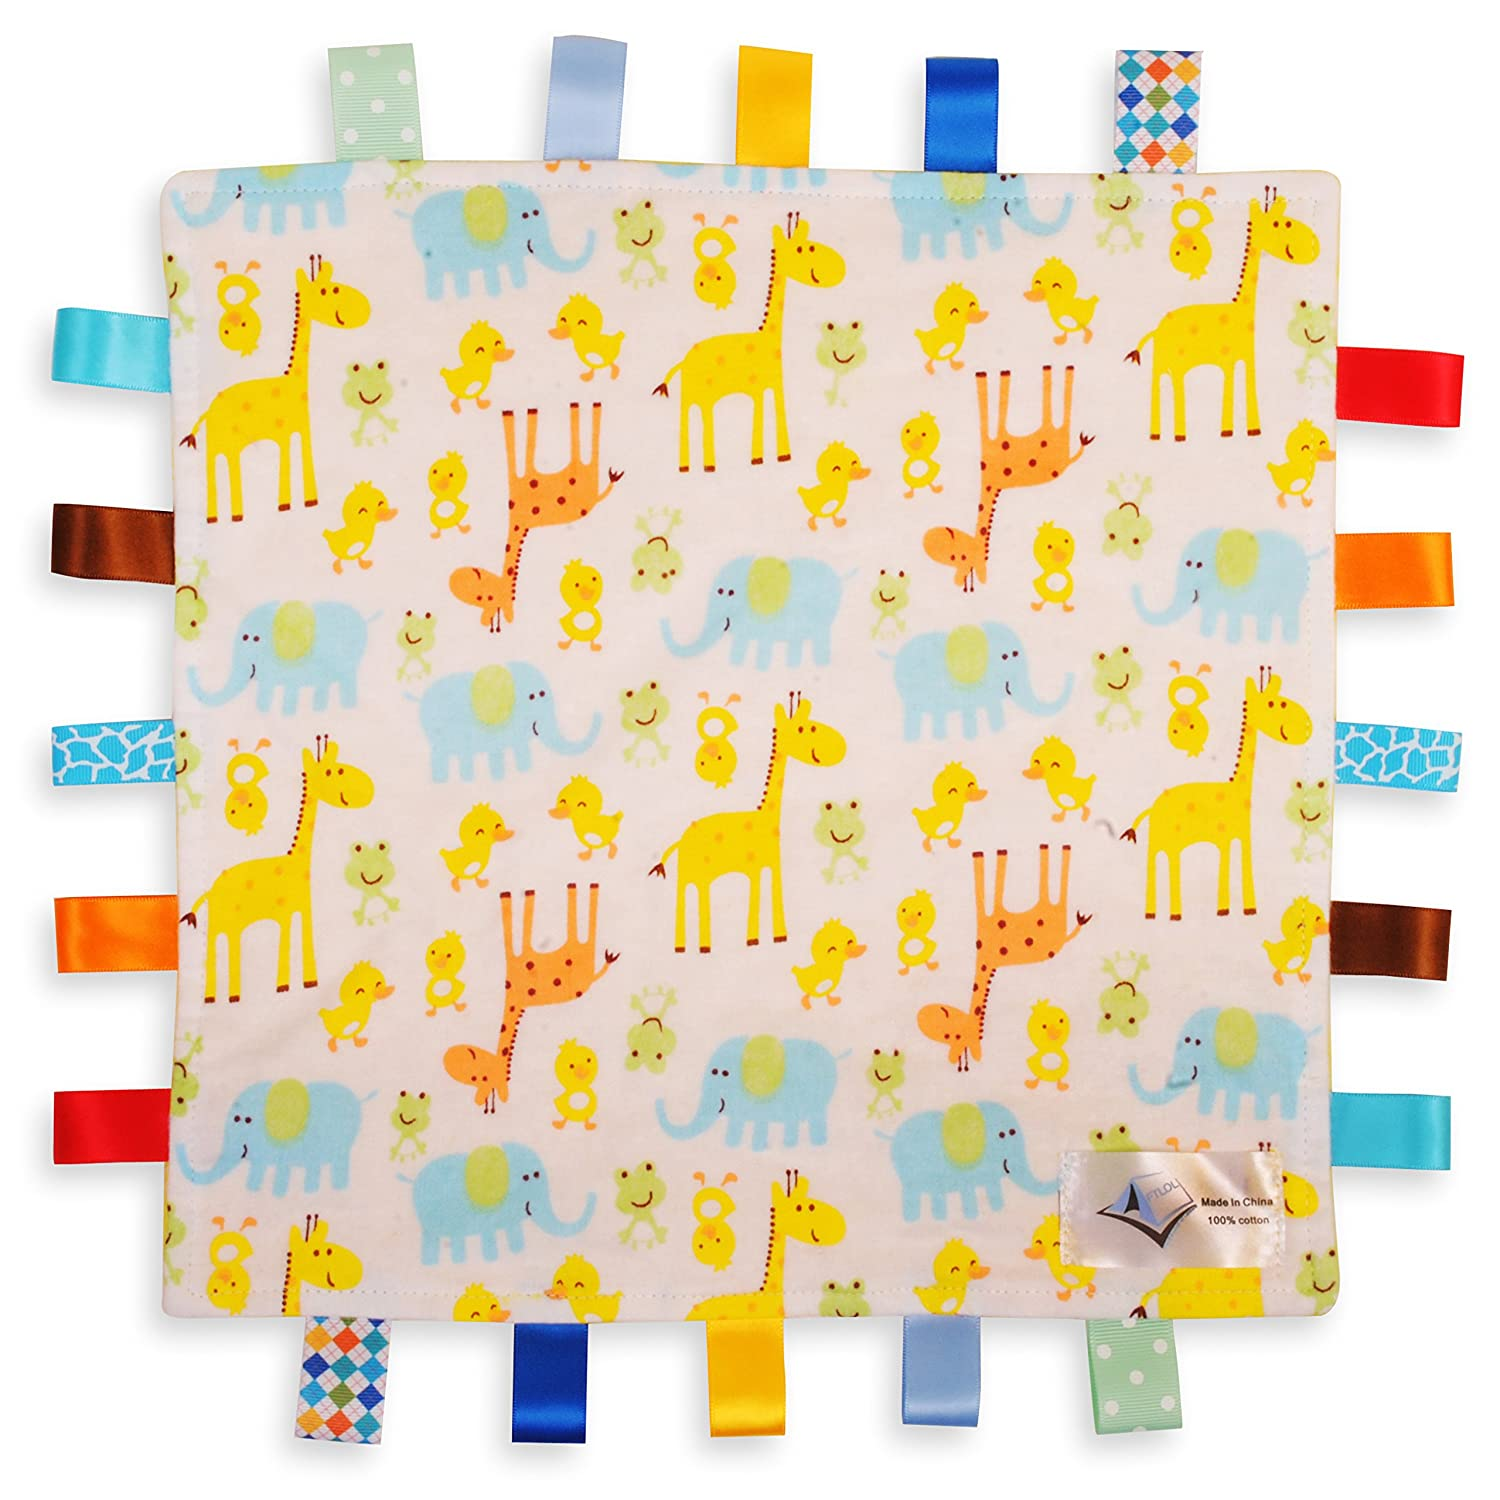 White Baby Tag, Taggy Blanket - Giraffe, Elephant and Chick Animals Tag with Plain Yellow Textured Underside For the Love of Leisure